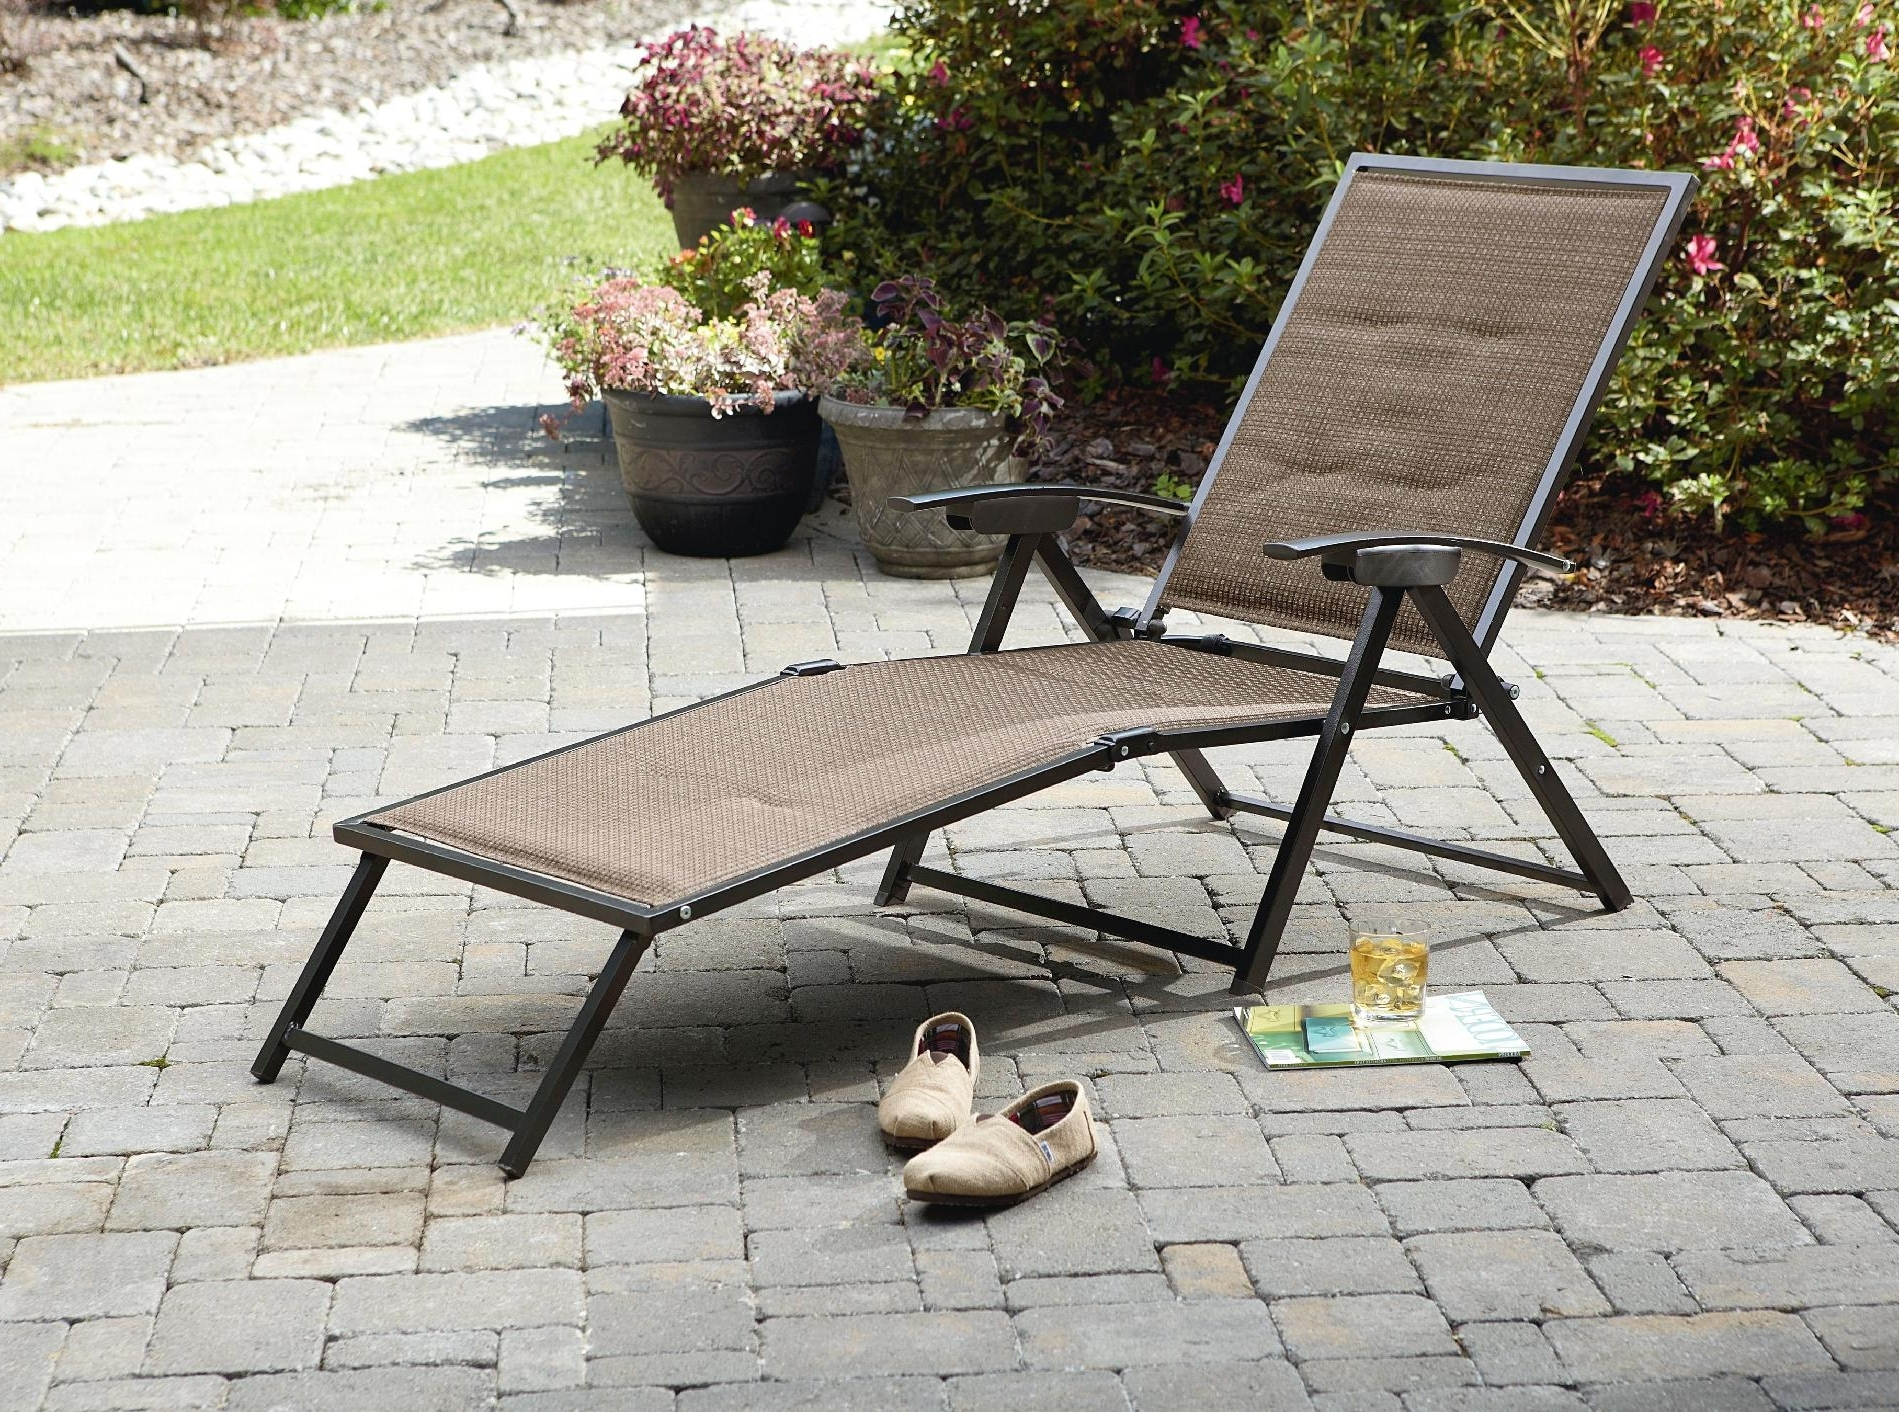 Fancy Patio Chaise Lounge Chairs (View 7 of 15)